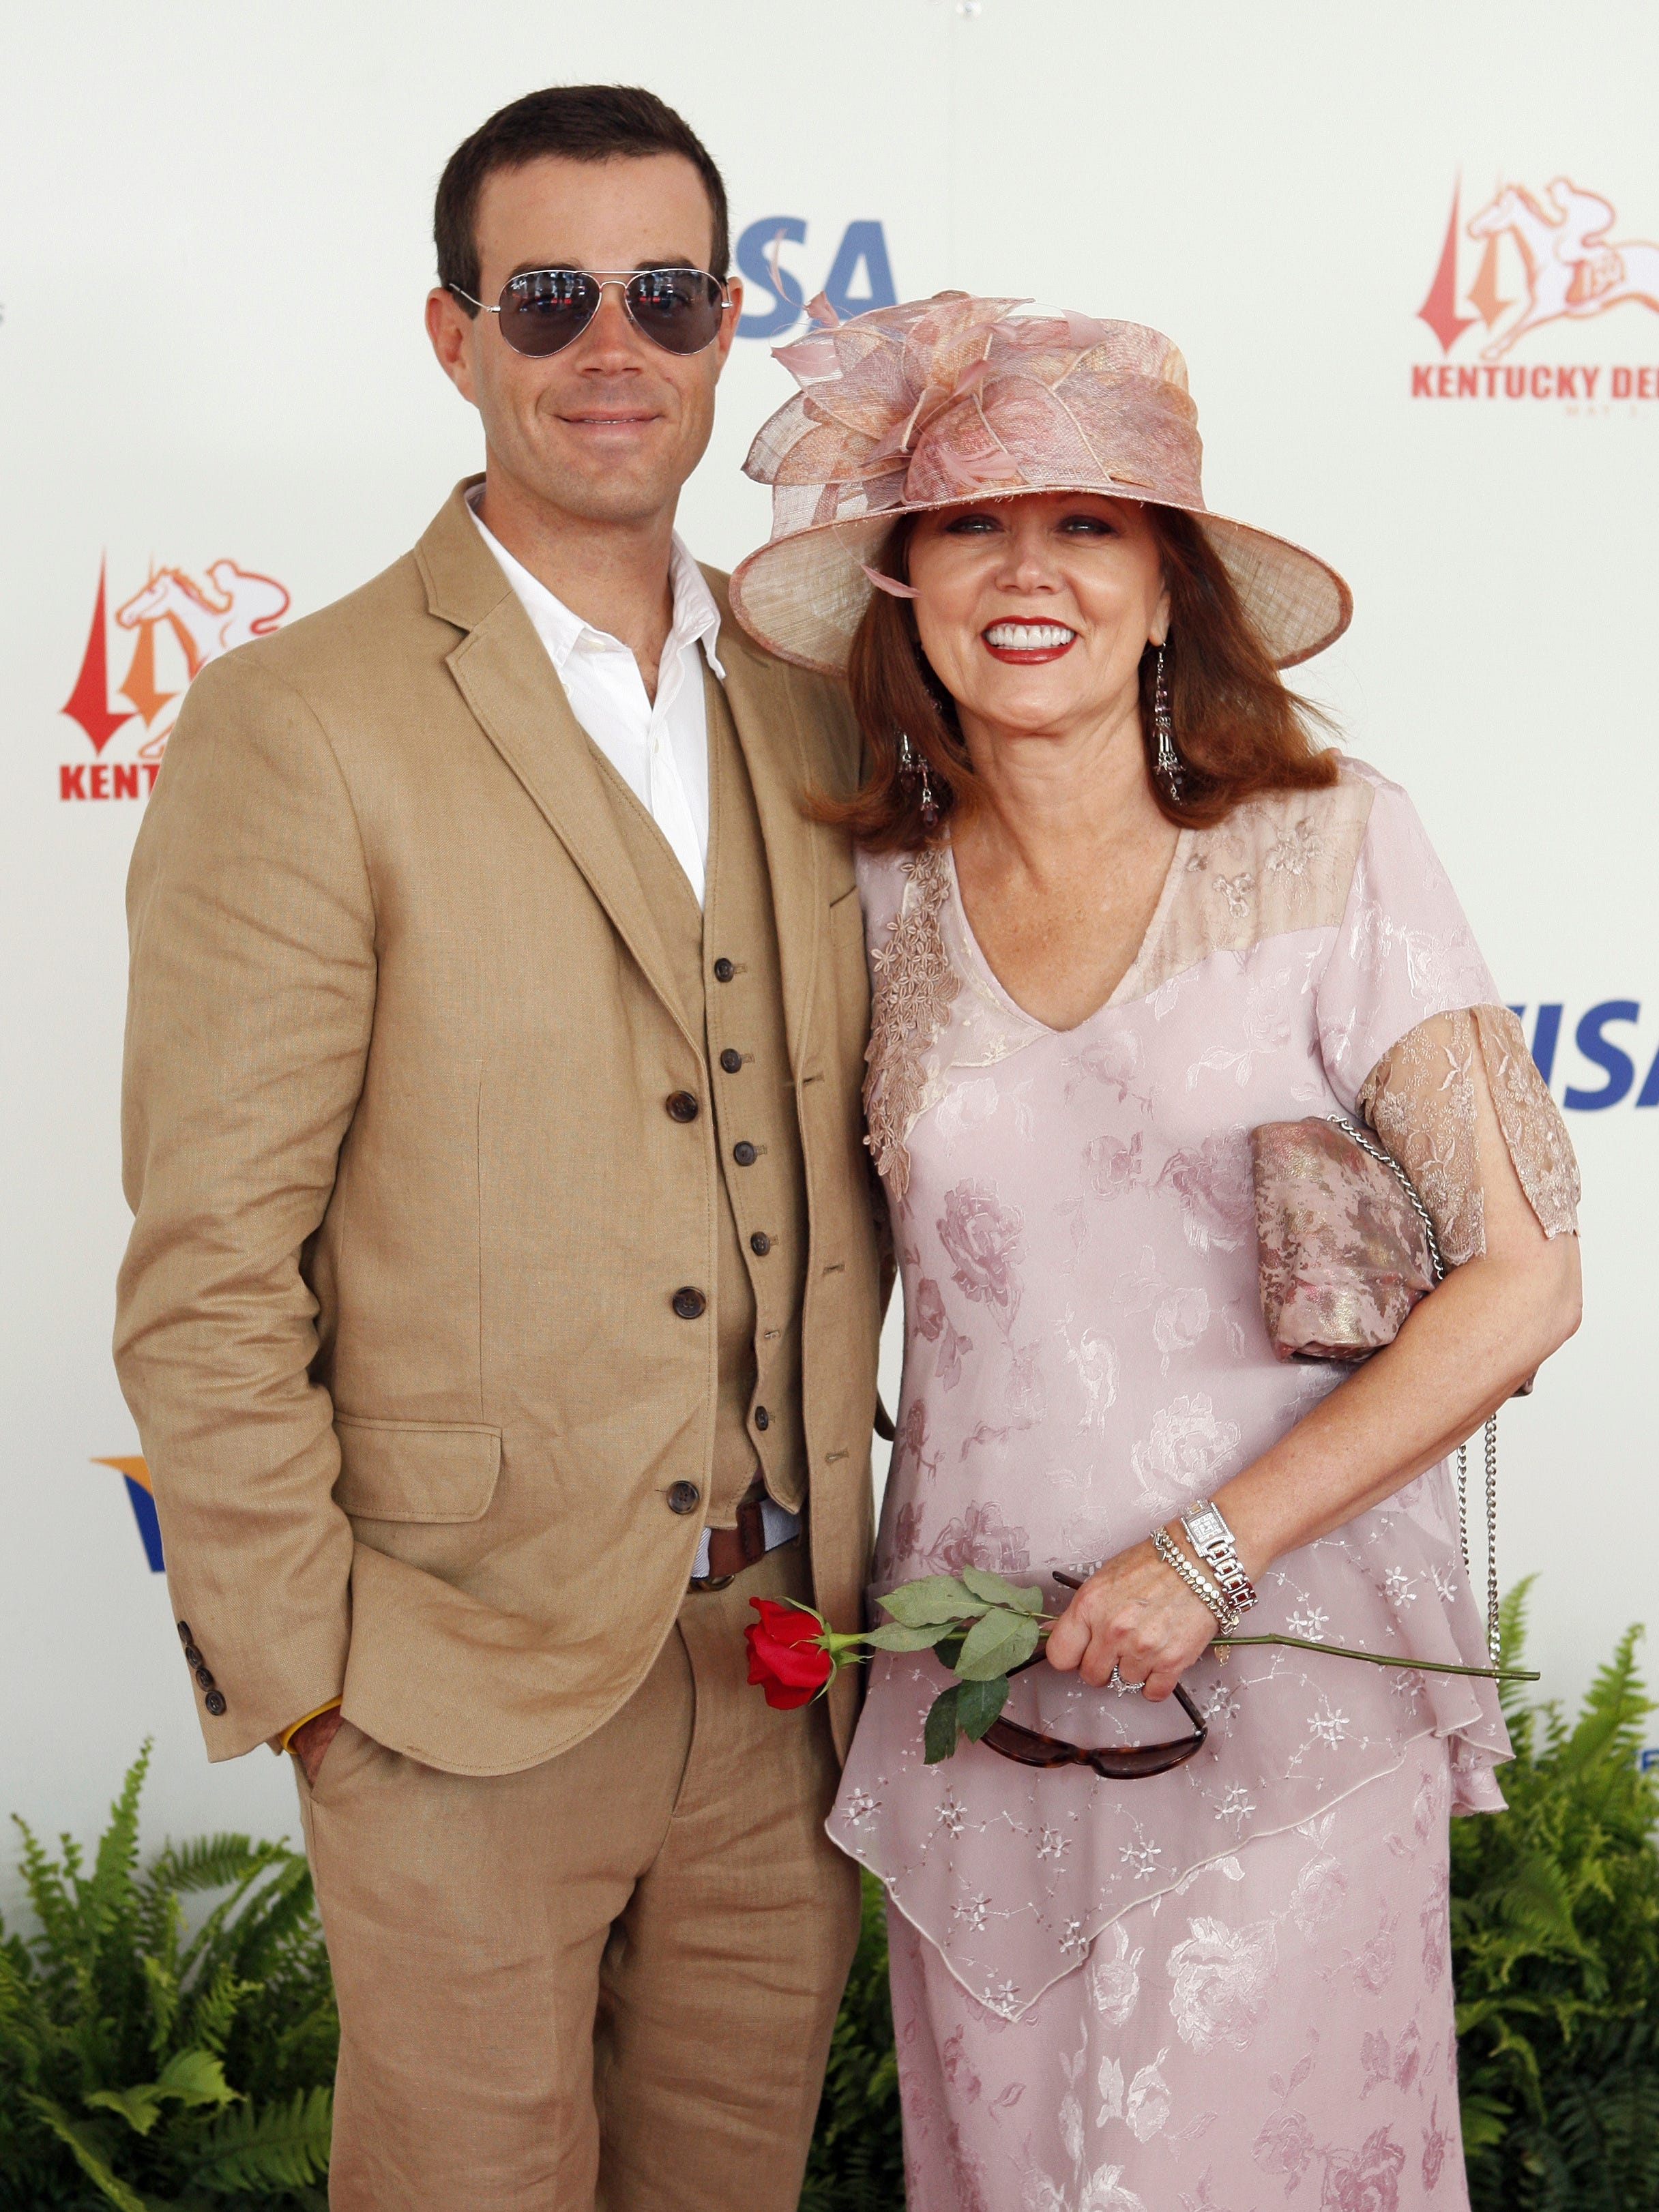 Carson Daly S Stepdad Dies Weeks After The Passing Of His Mother